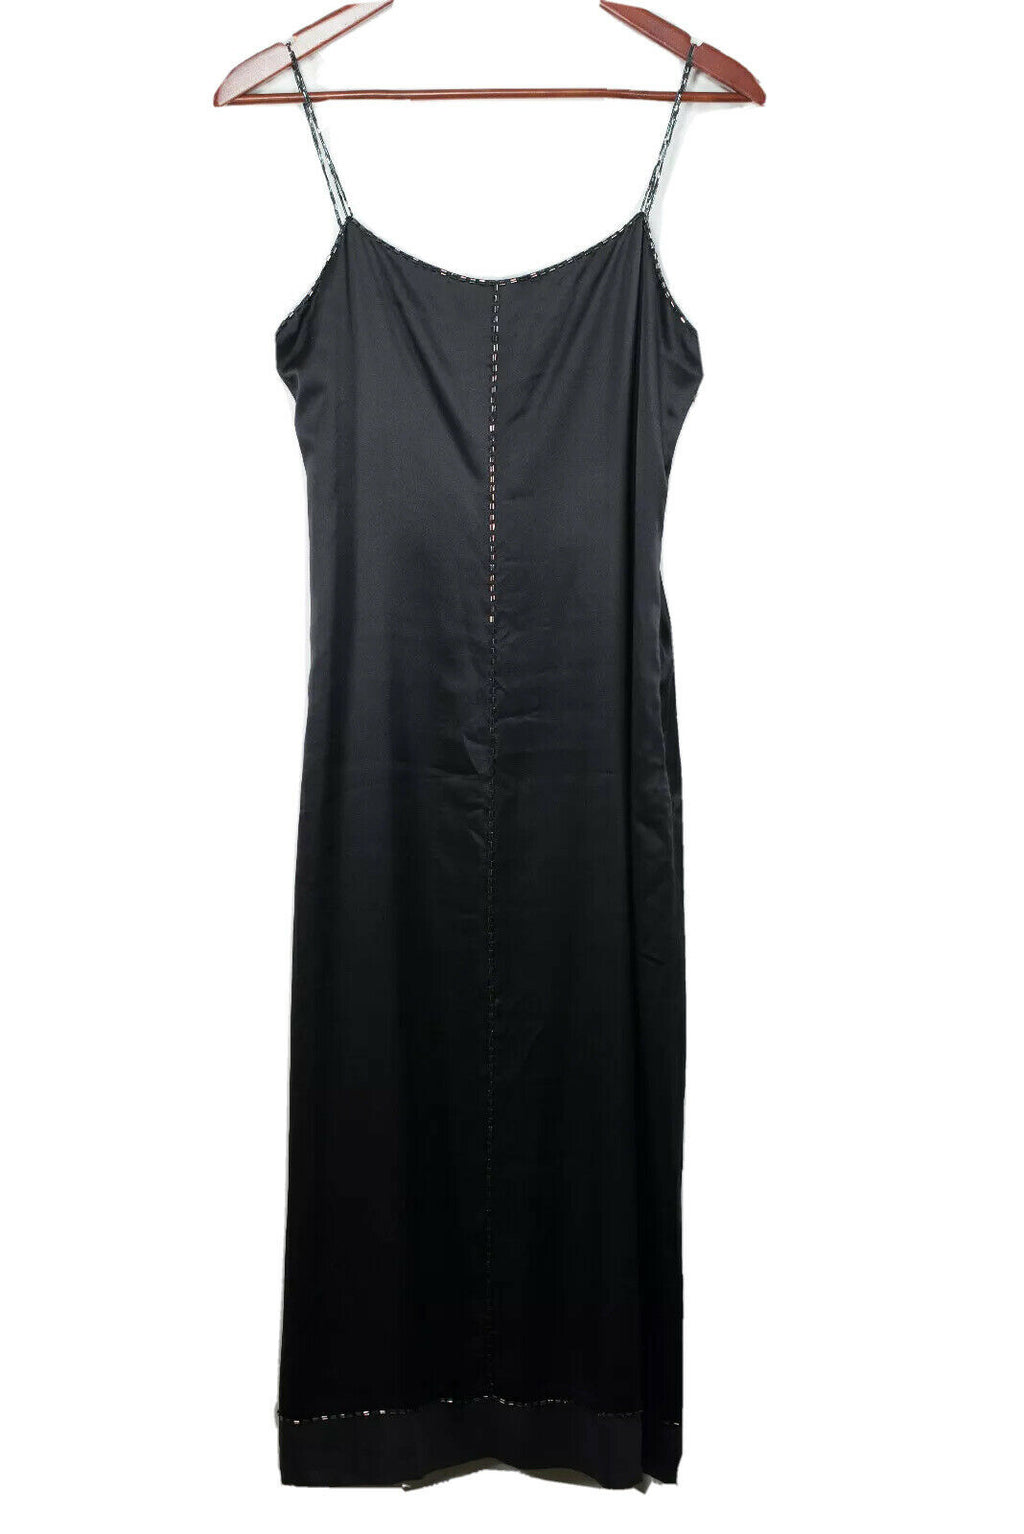 Armani Exchange Size 6 Black Midi Beaded Silk Slip Dress